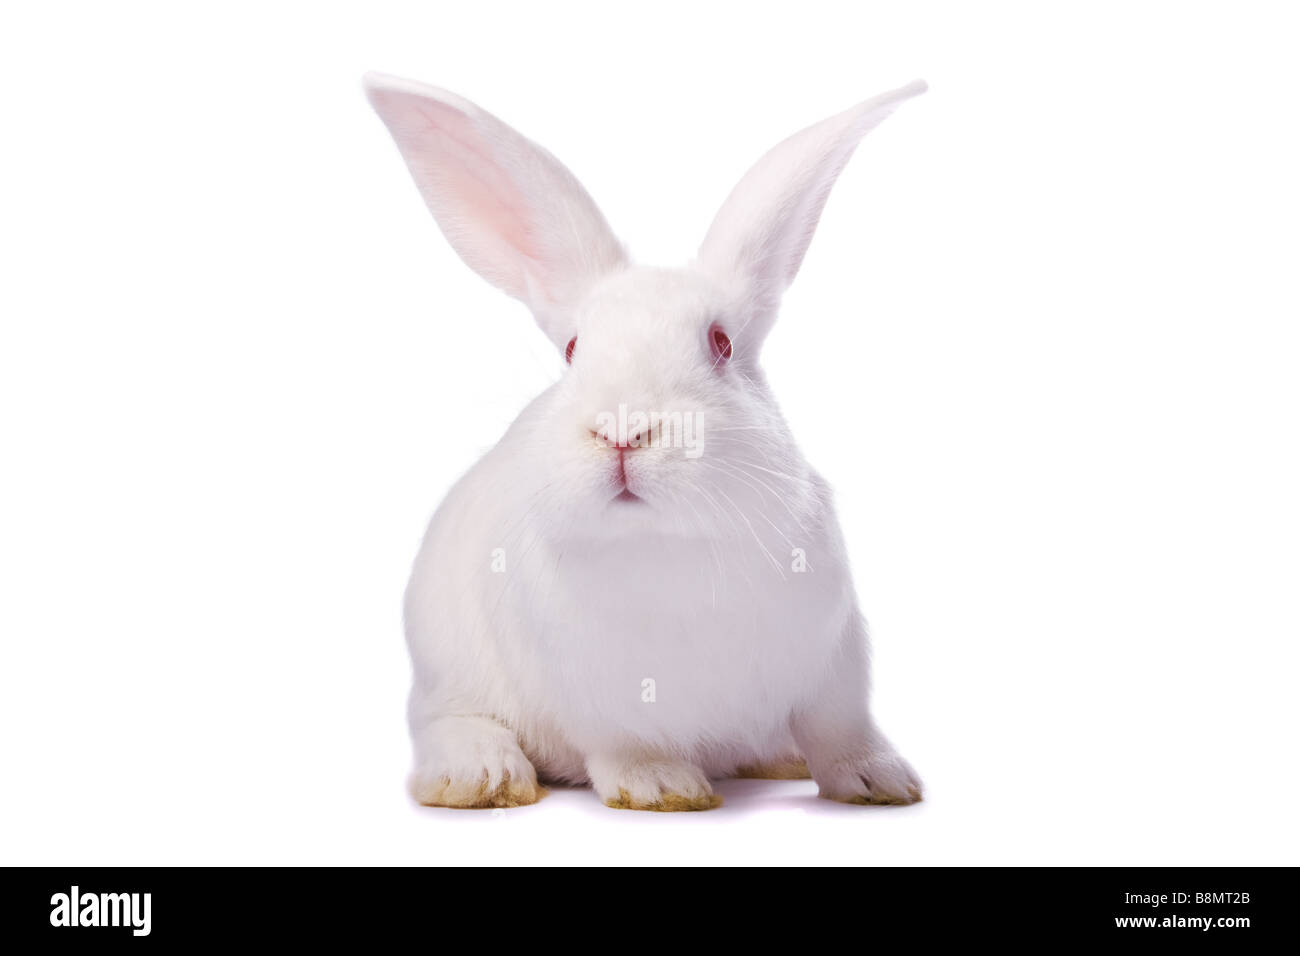 Curious albino rabbit isolated on white background /// bunny Easter cutout cut out red eyes curious sitting cute - Stock Image